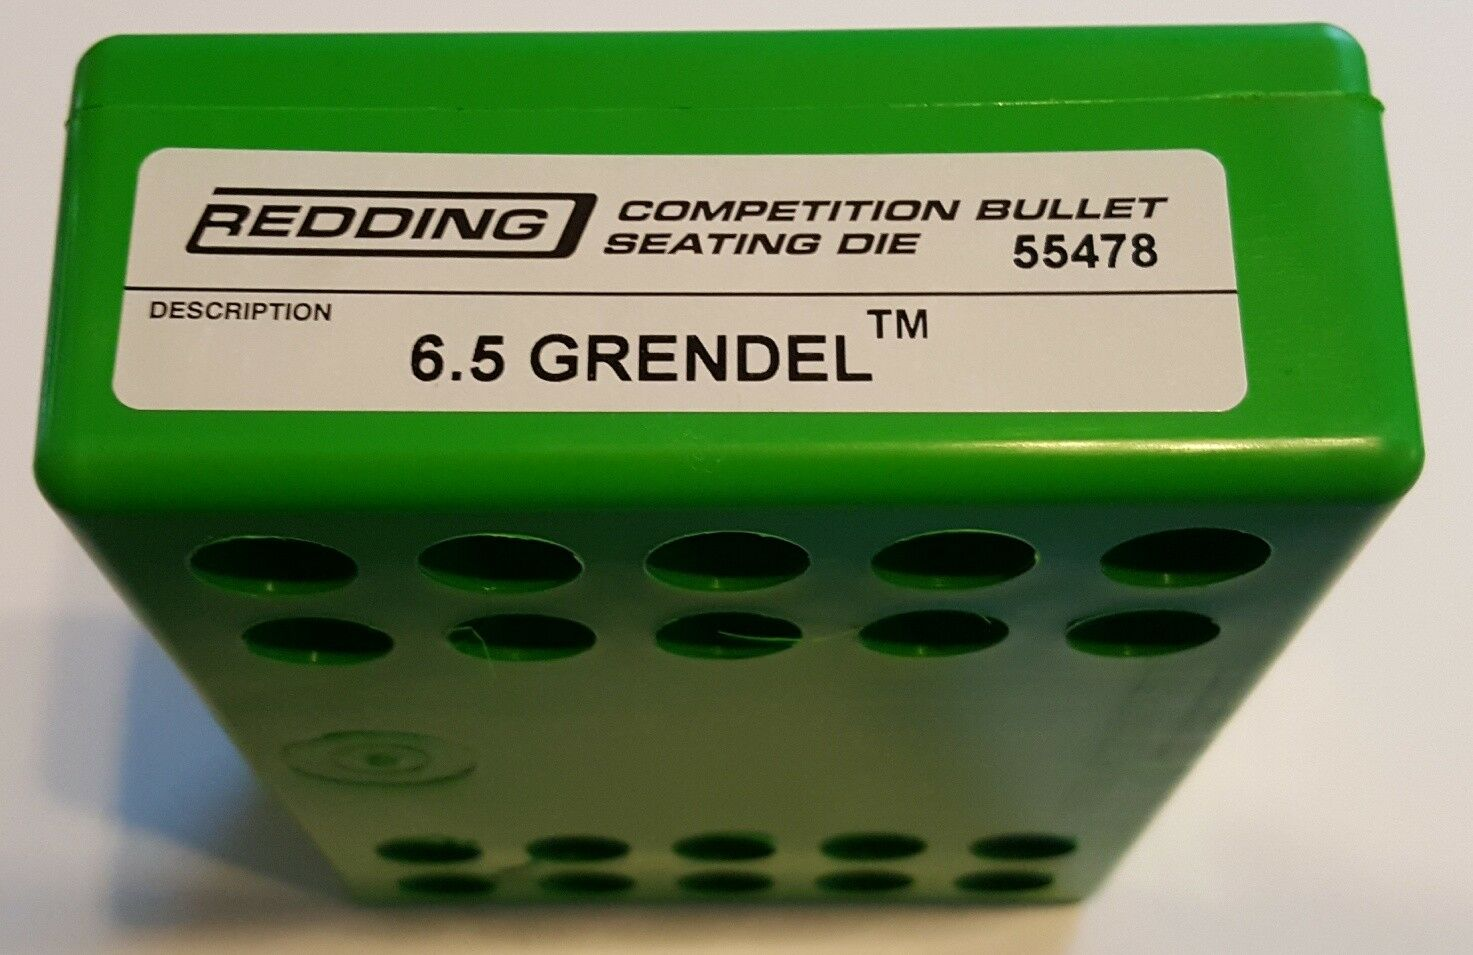 55478 REDDING COMPETITION SEATING DIE - 6.5 GRENDEL - NEW - FREE SHIP